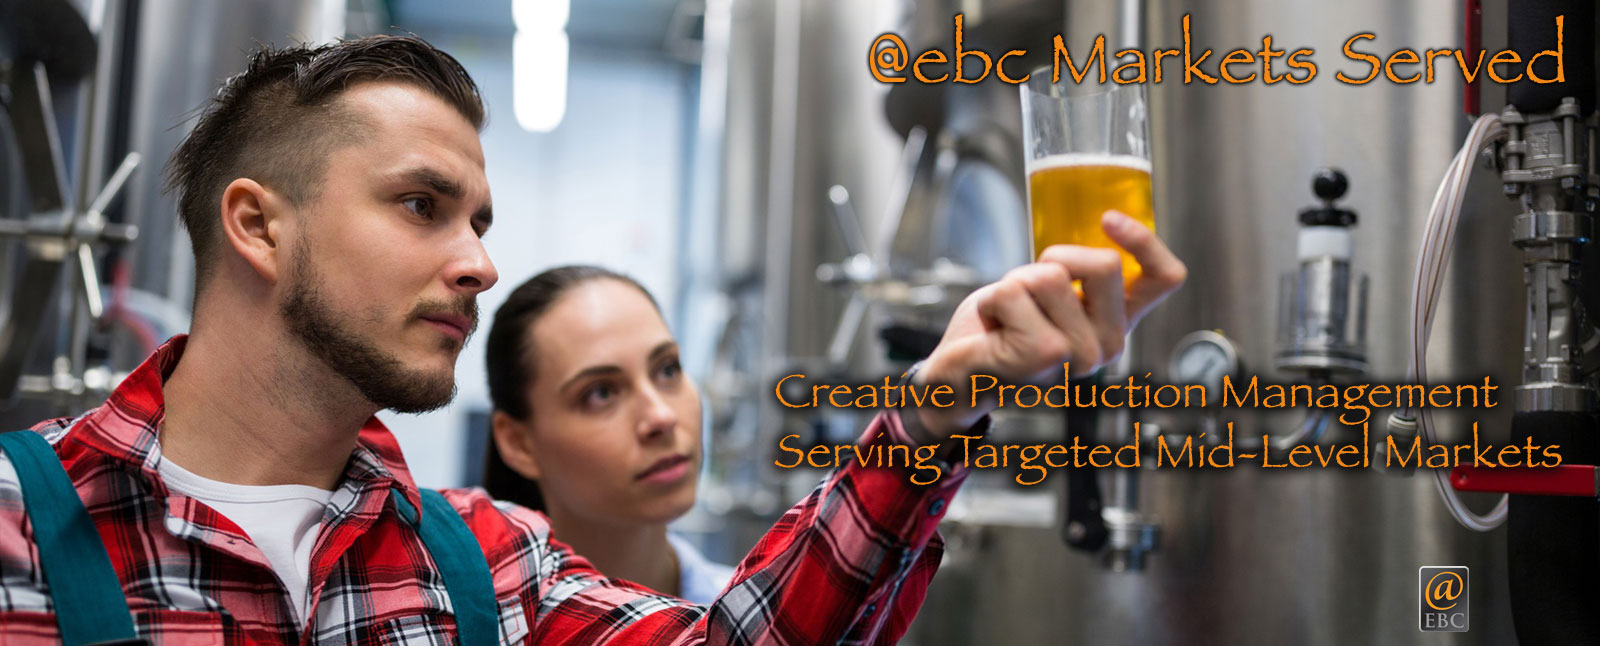 at ebc serves mid market companies fr creative web design development marketing